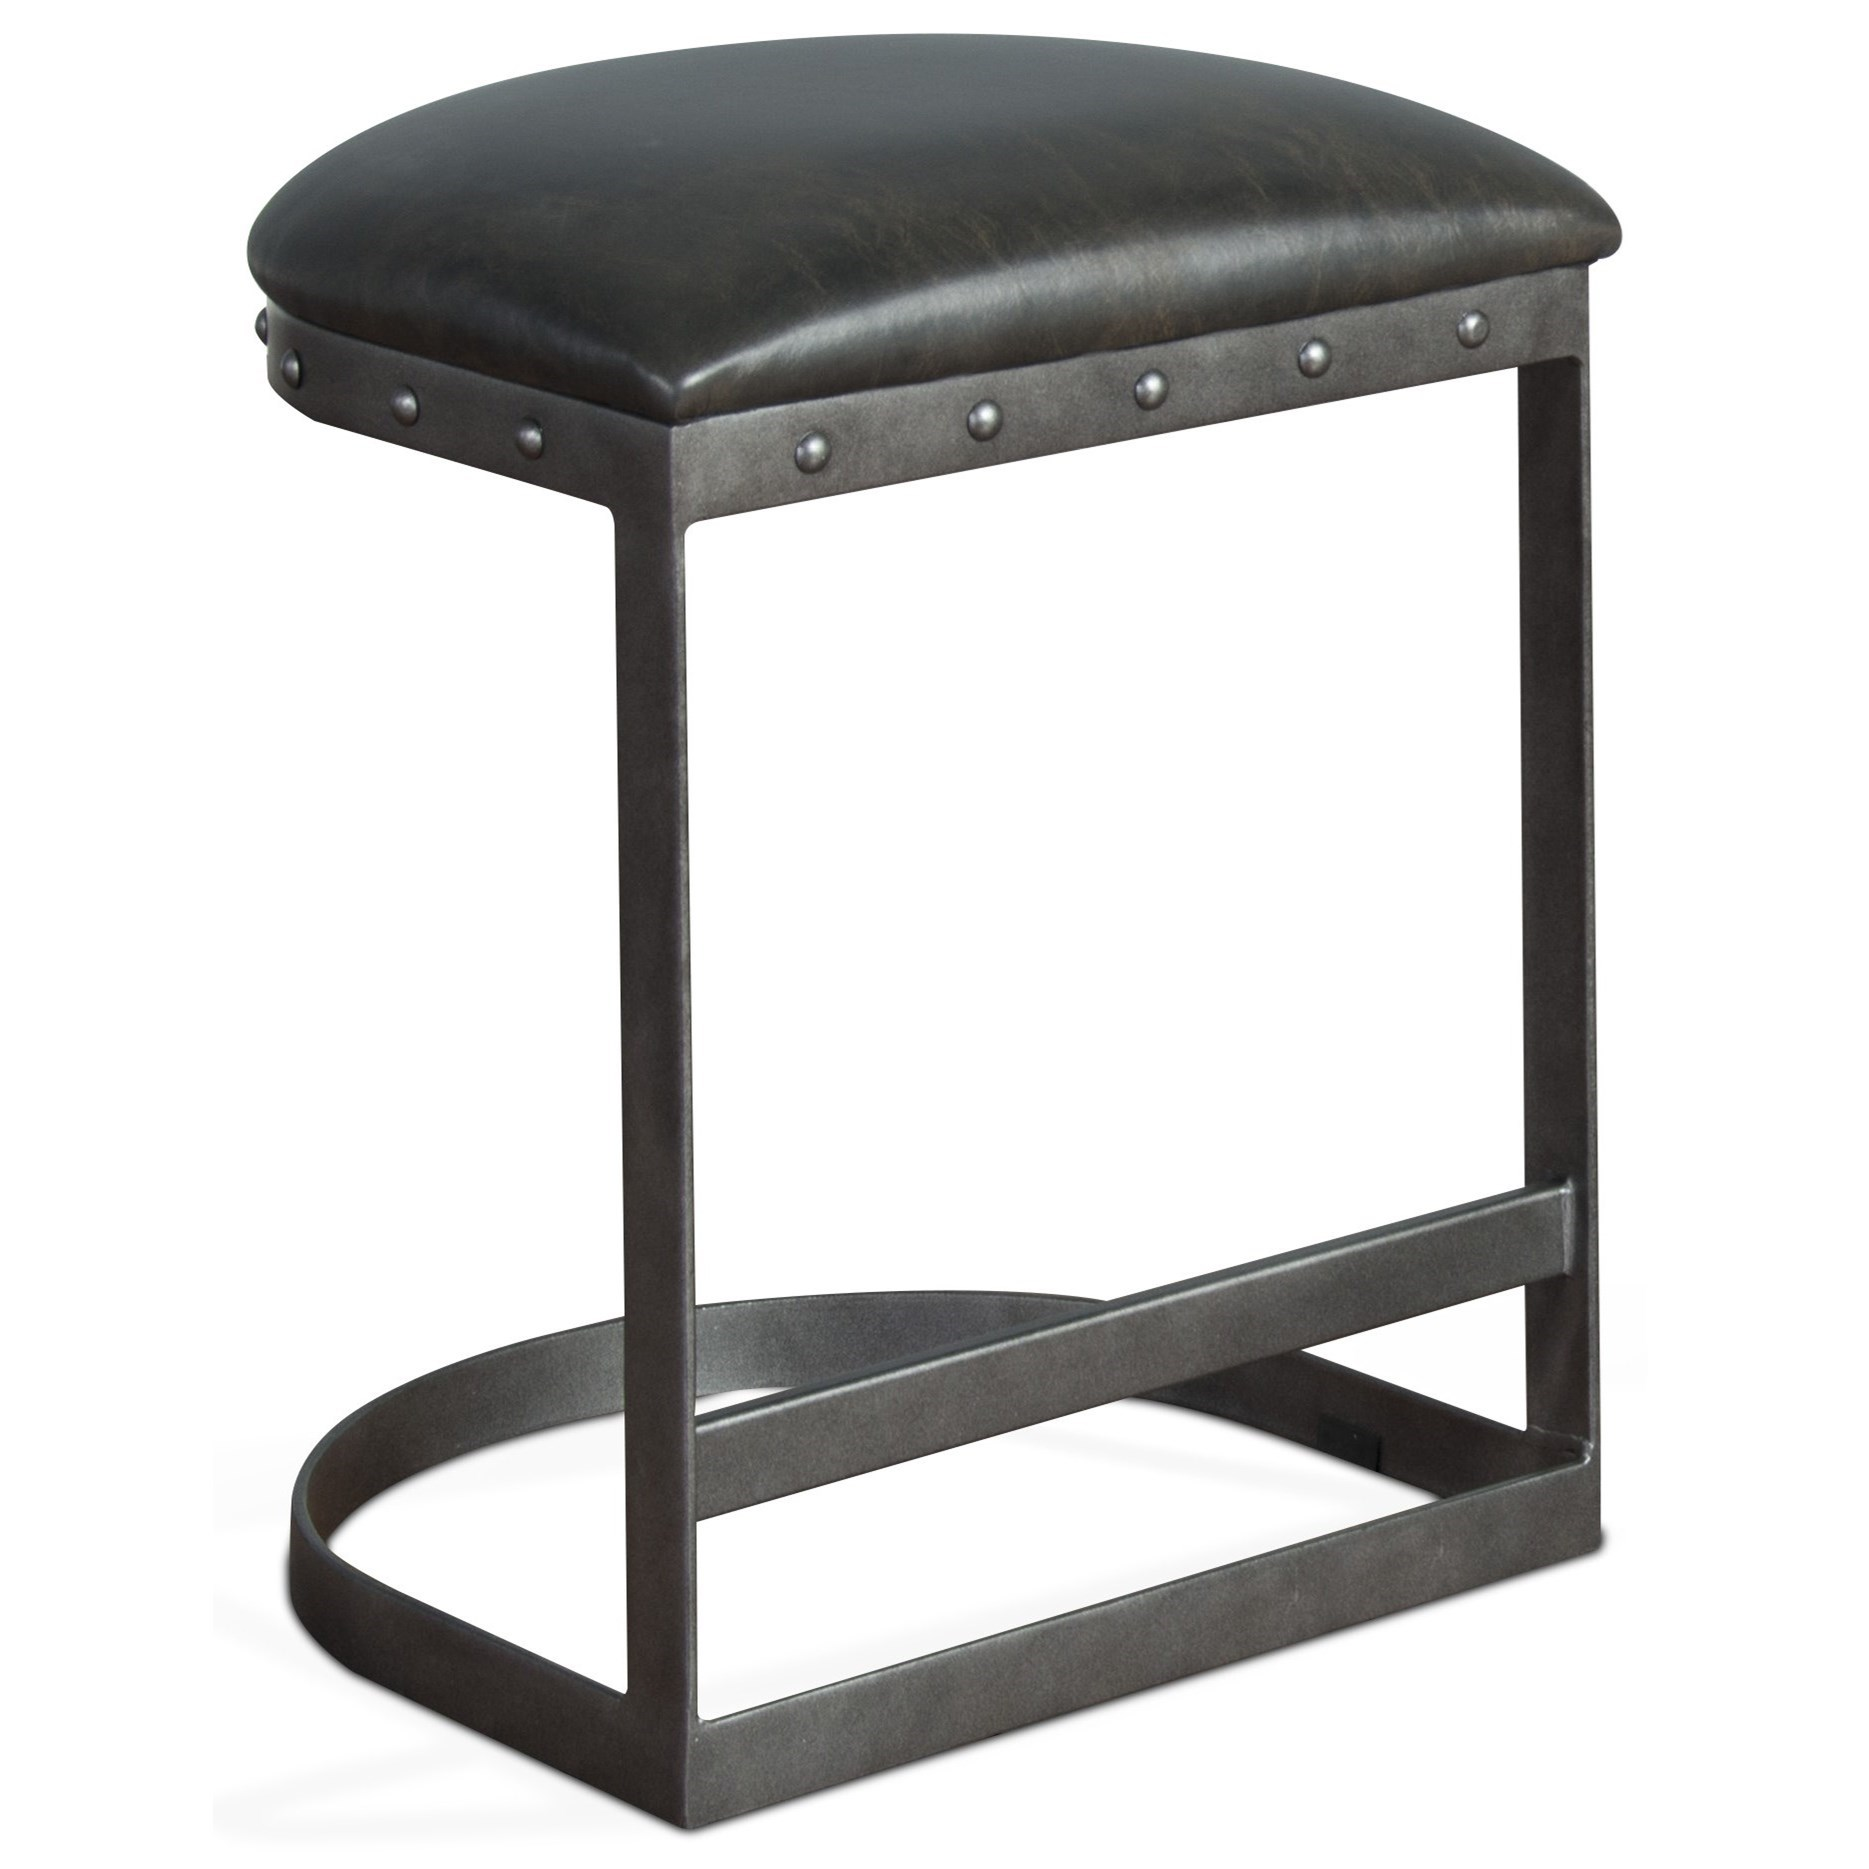 Sunny Designs Metro Flex Tahoe Counter Height Bar Stool